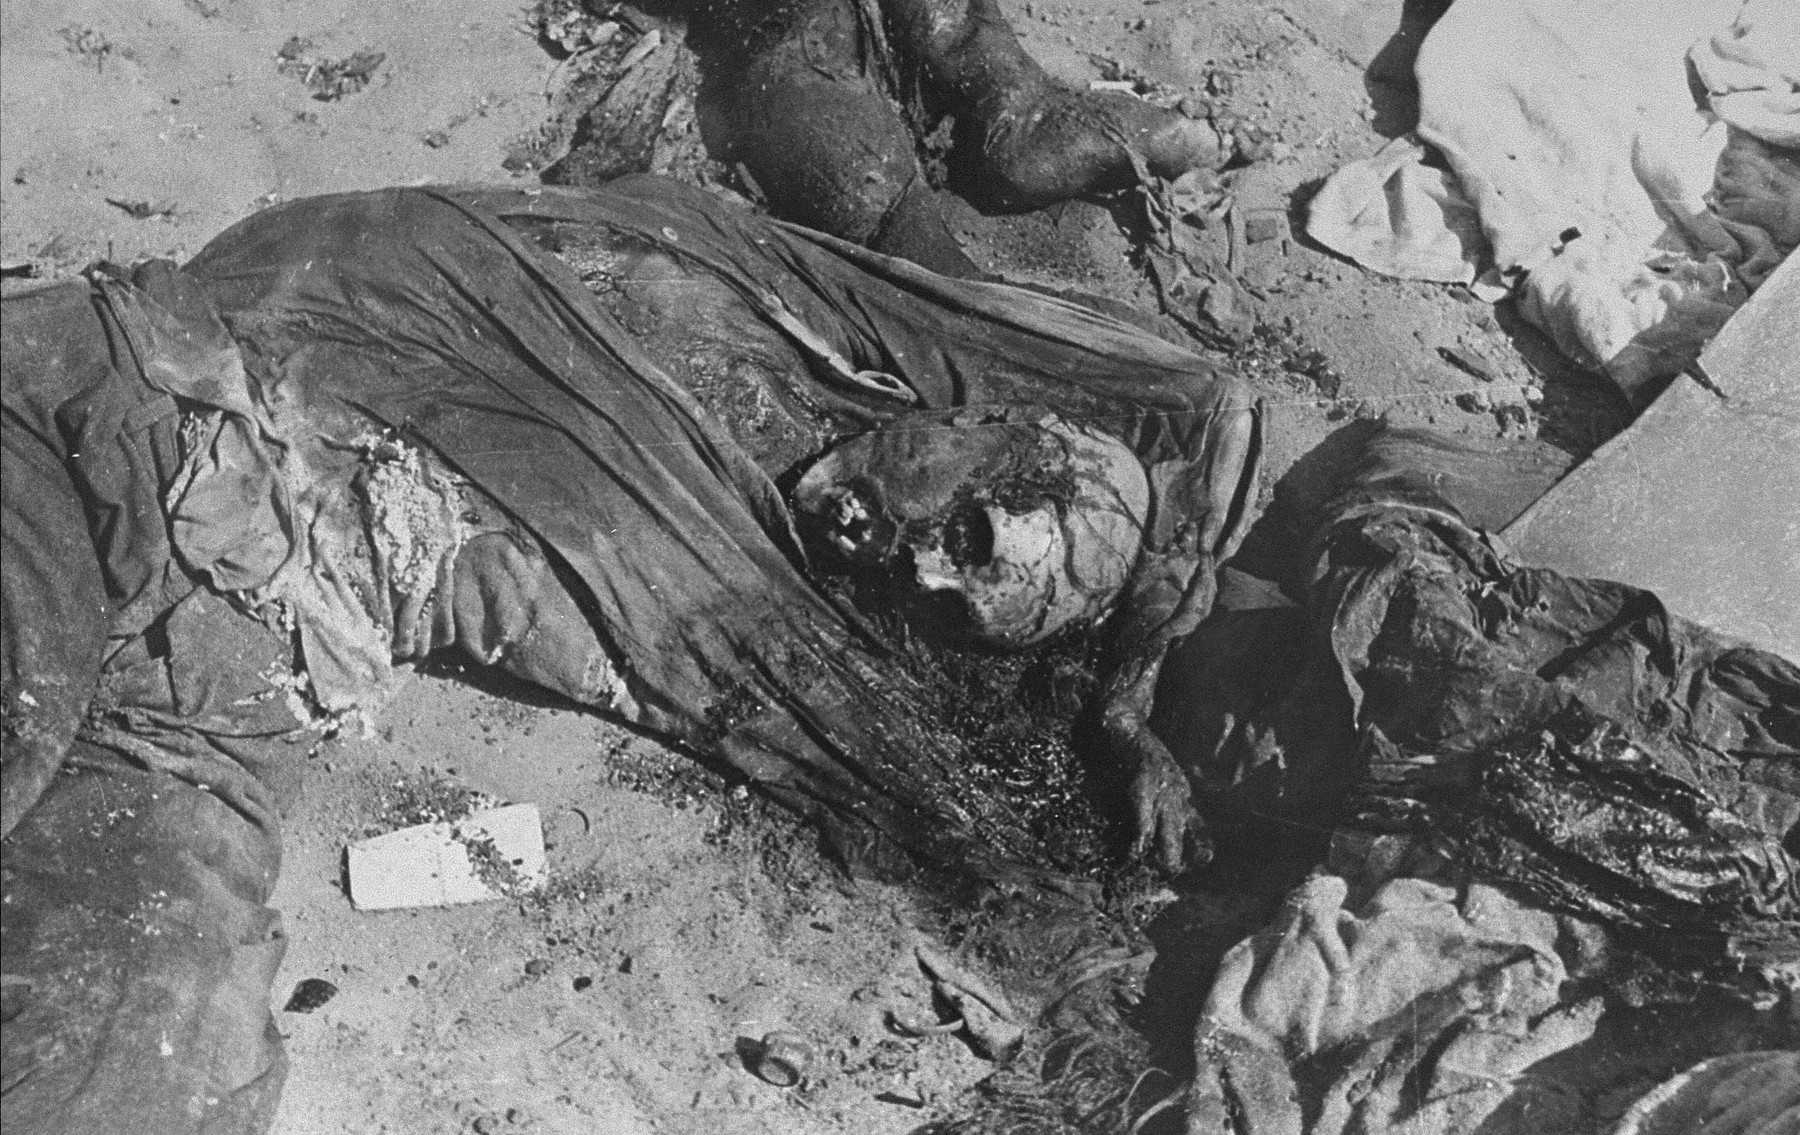 The charred corpses of Rabbi Shmukliarski, his wife and son in their bunker after the razing of the Kovno ghetto.